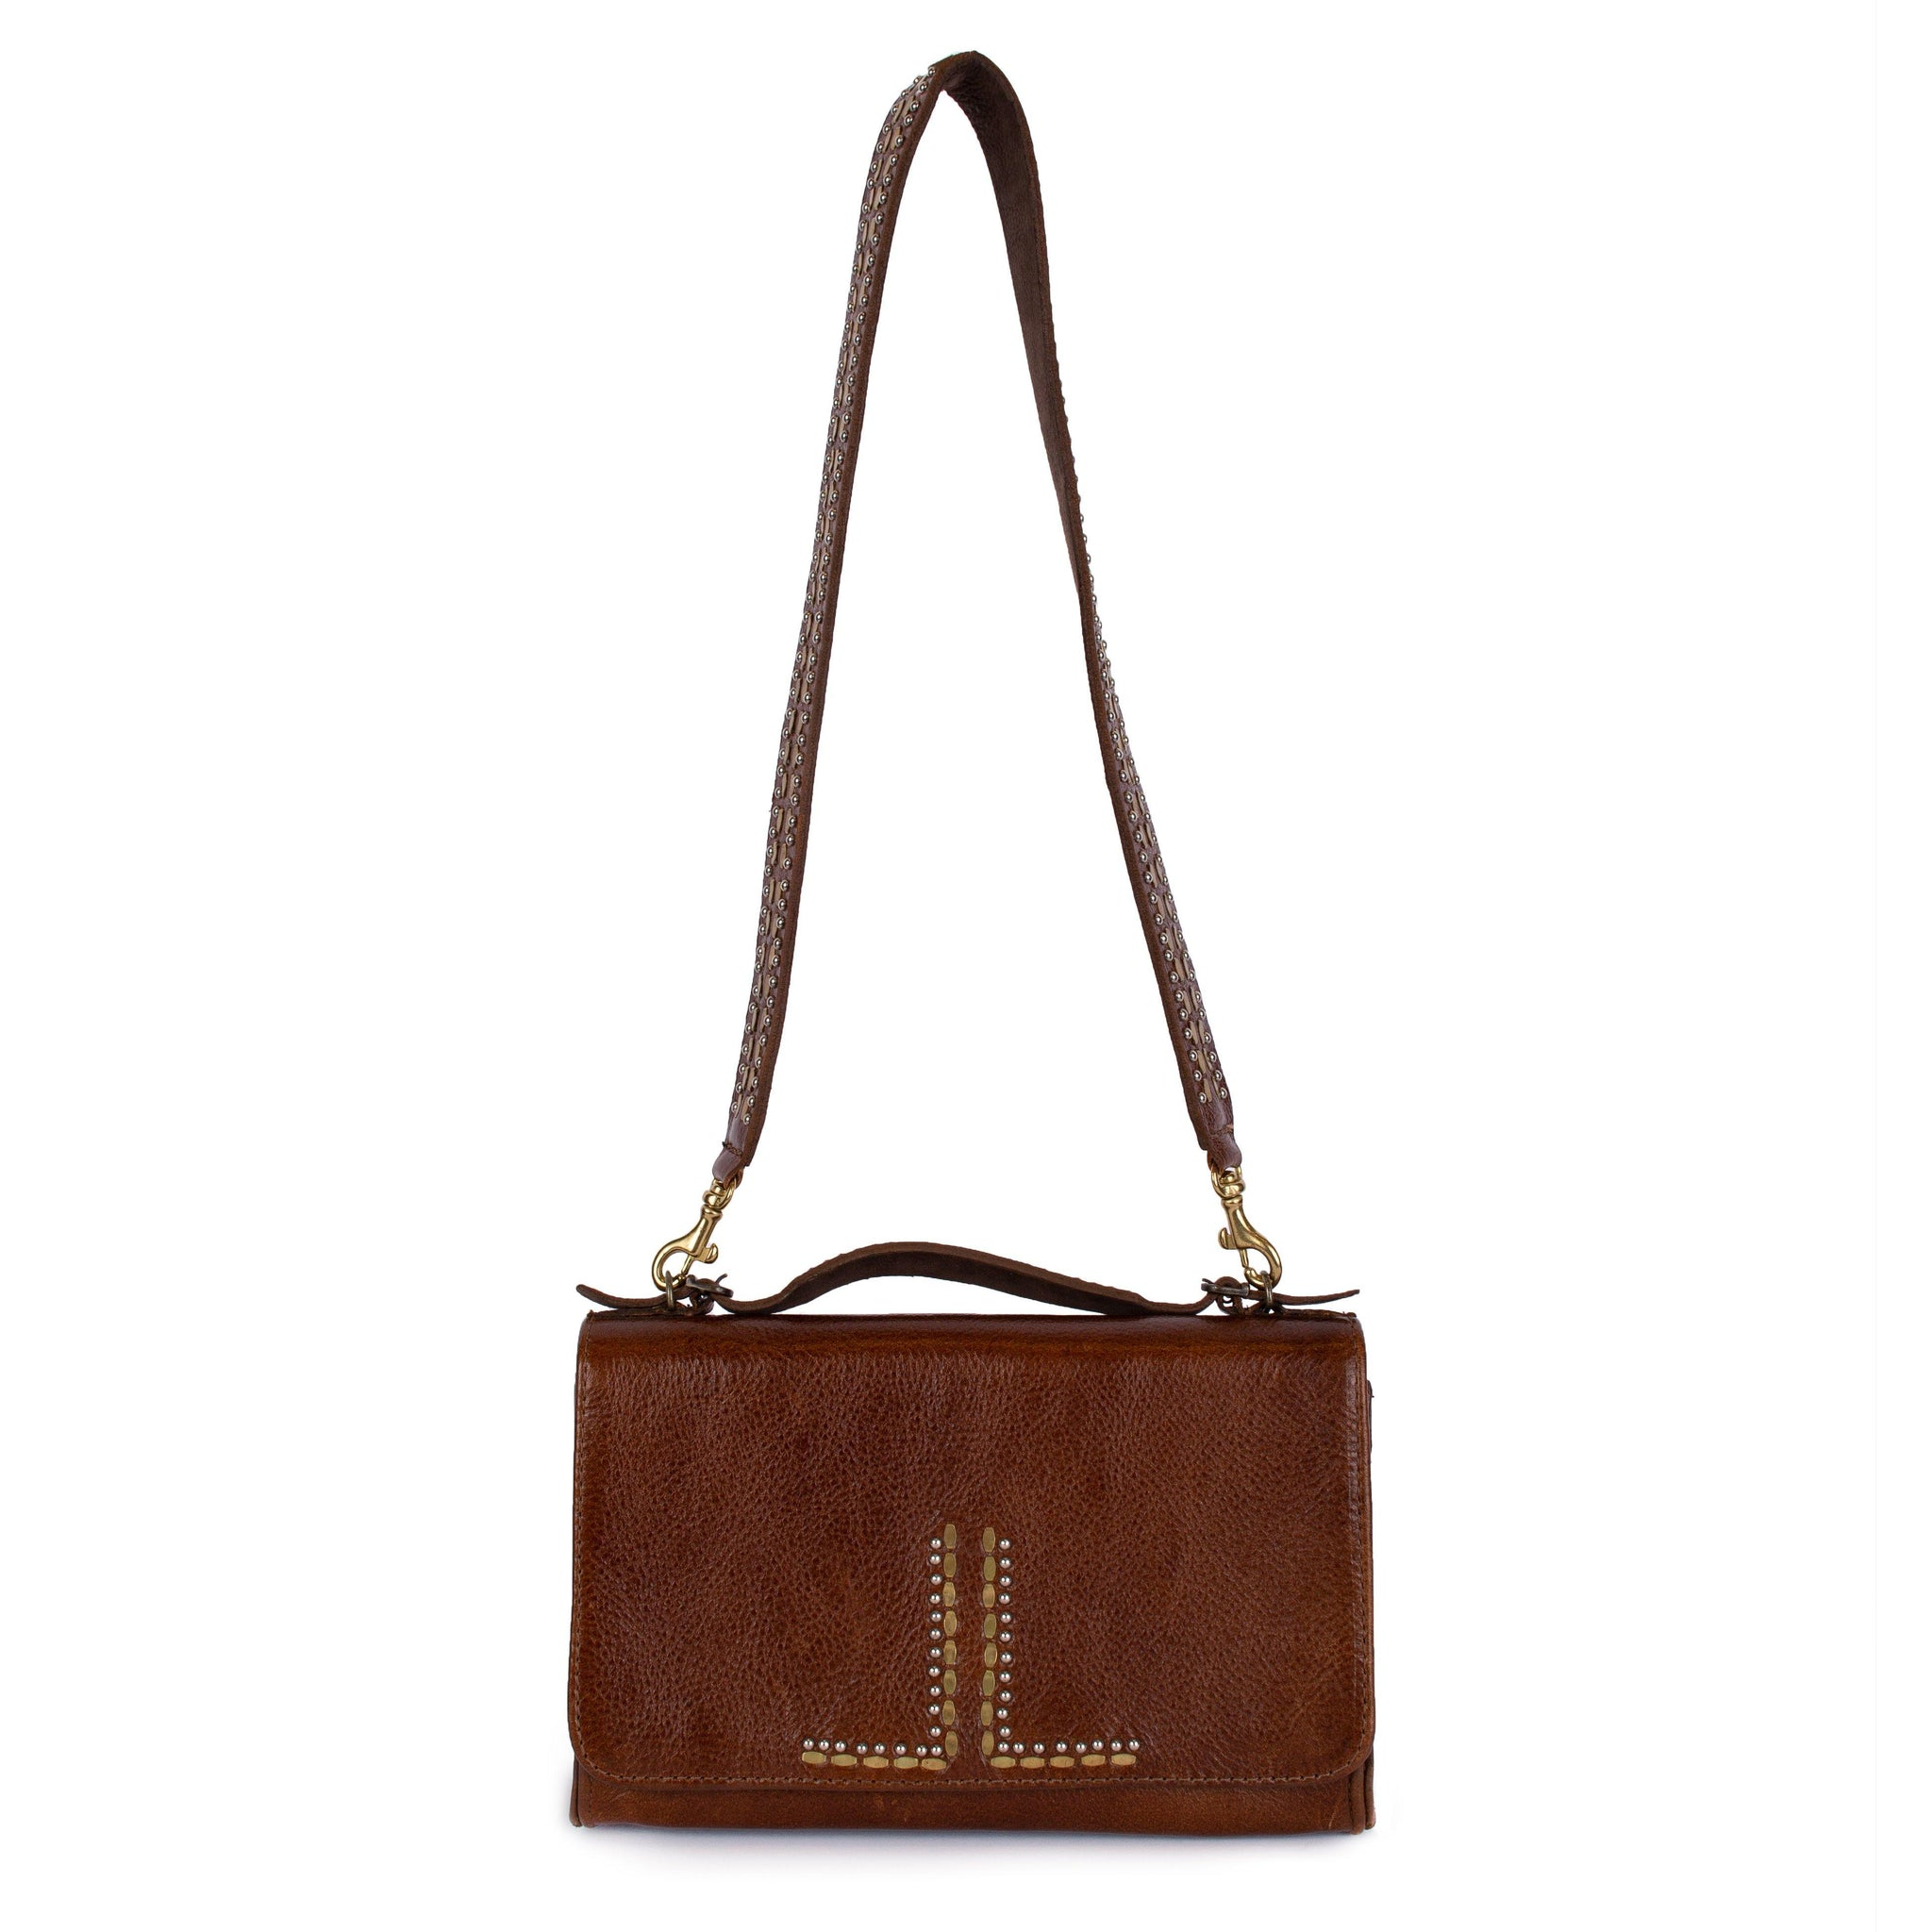 handmade brown leather handbag for women with brass and nickel studs artwork - Calleen Cordero Designs